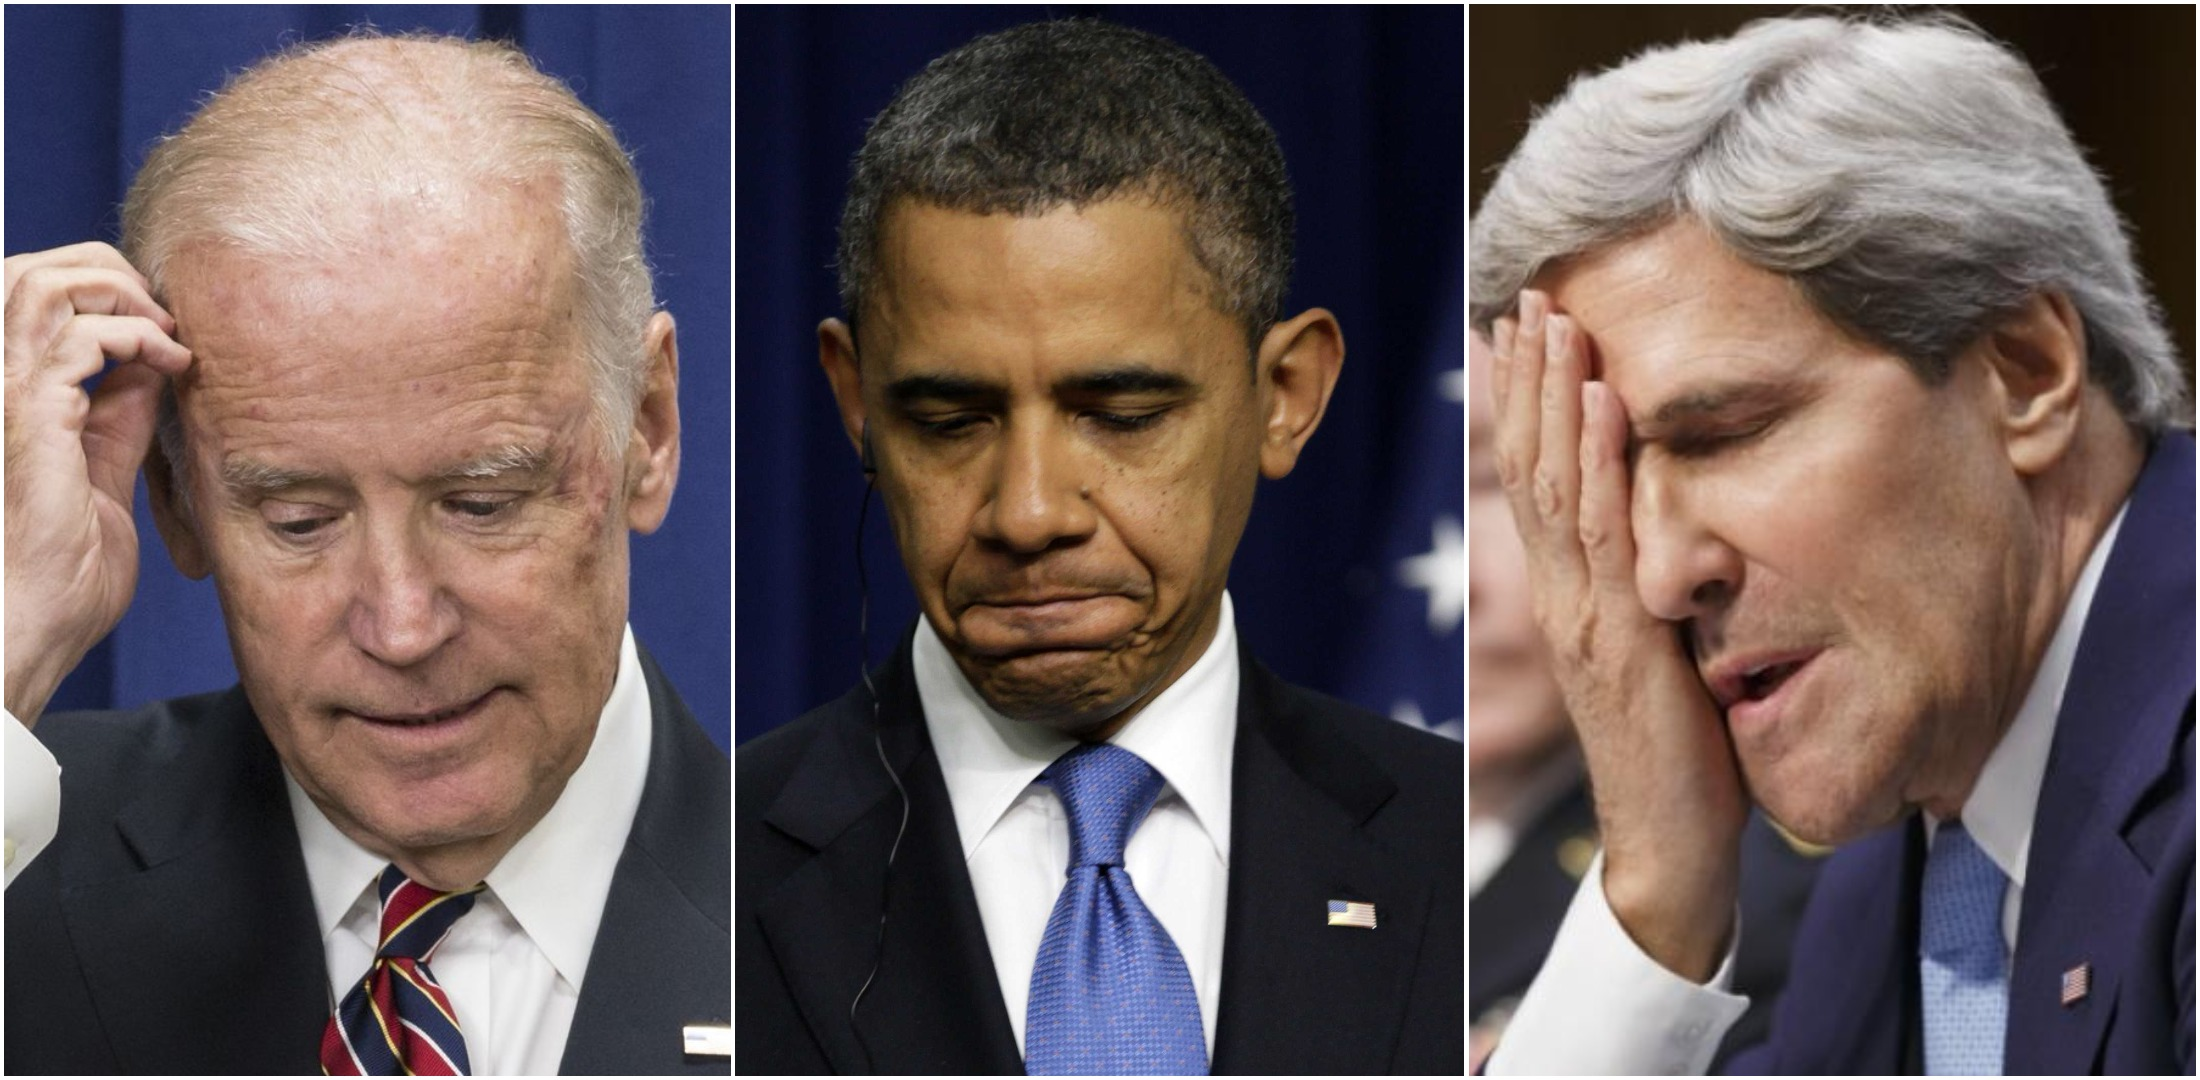 HUGE! EXCLUSIVE BOMBSHELL: Documents Released by Ukrainian General Prosecutor's Office Reveal MILLIONS Funneled to Hunter Biden and the John Kerry Family